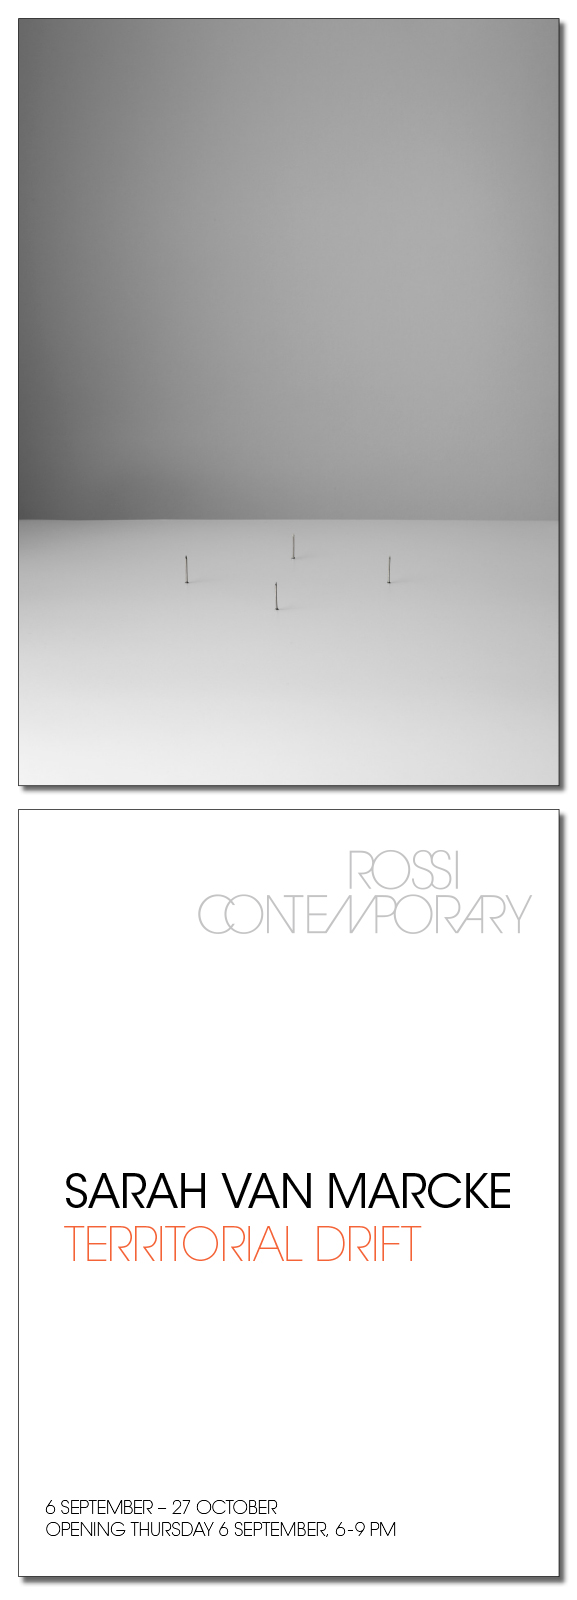 Solo exhibition at Rossicontemporary!